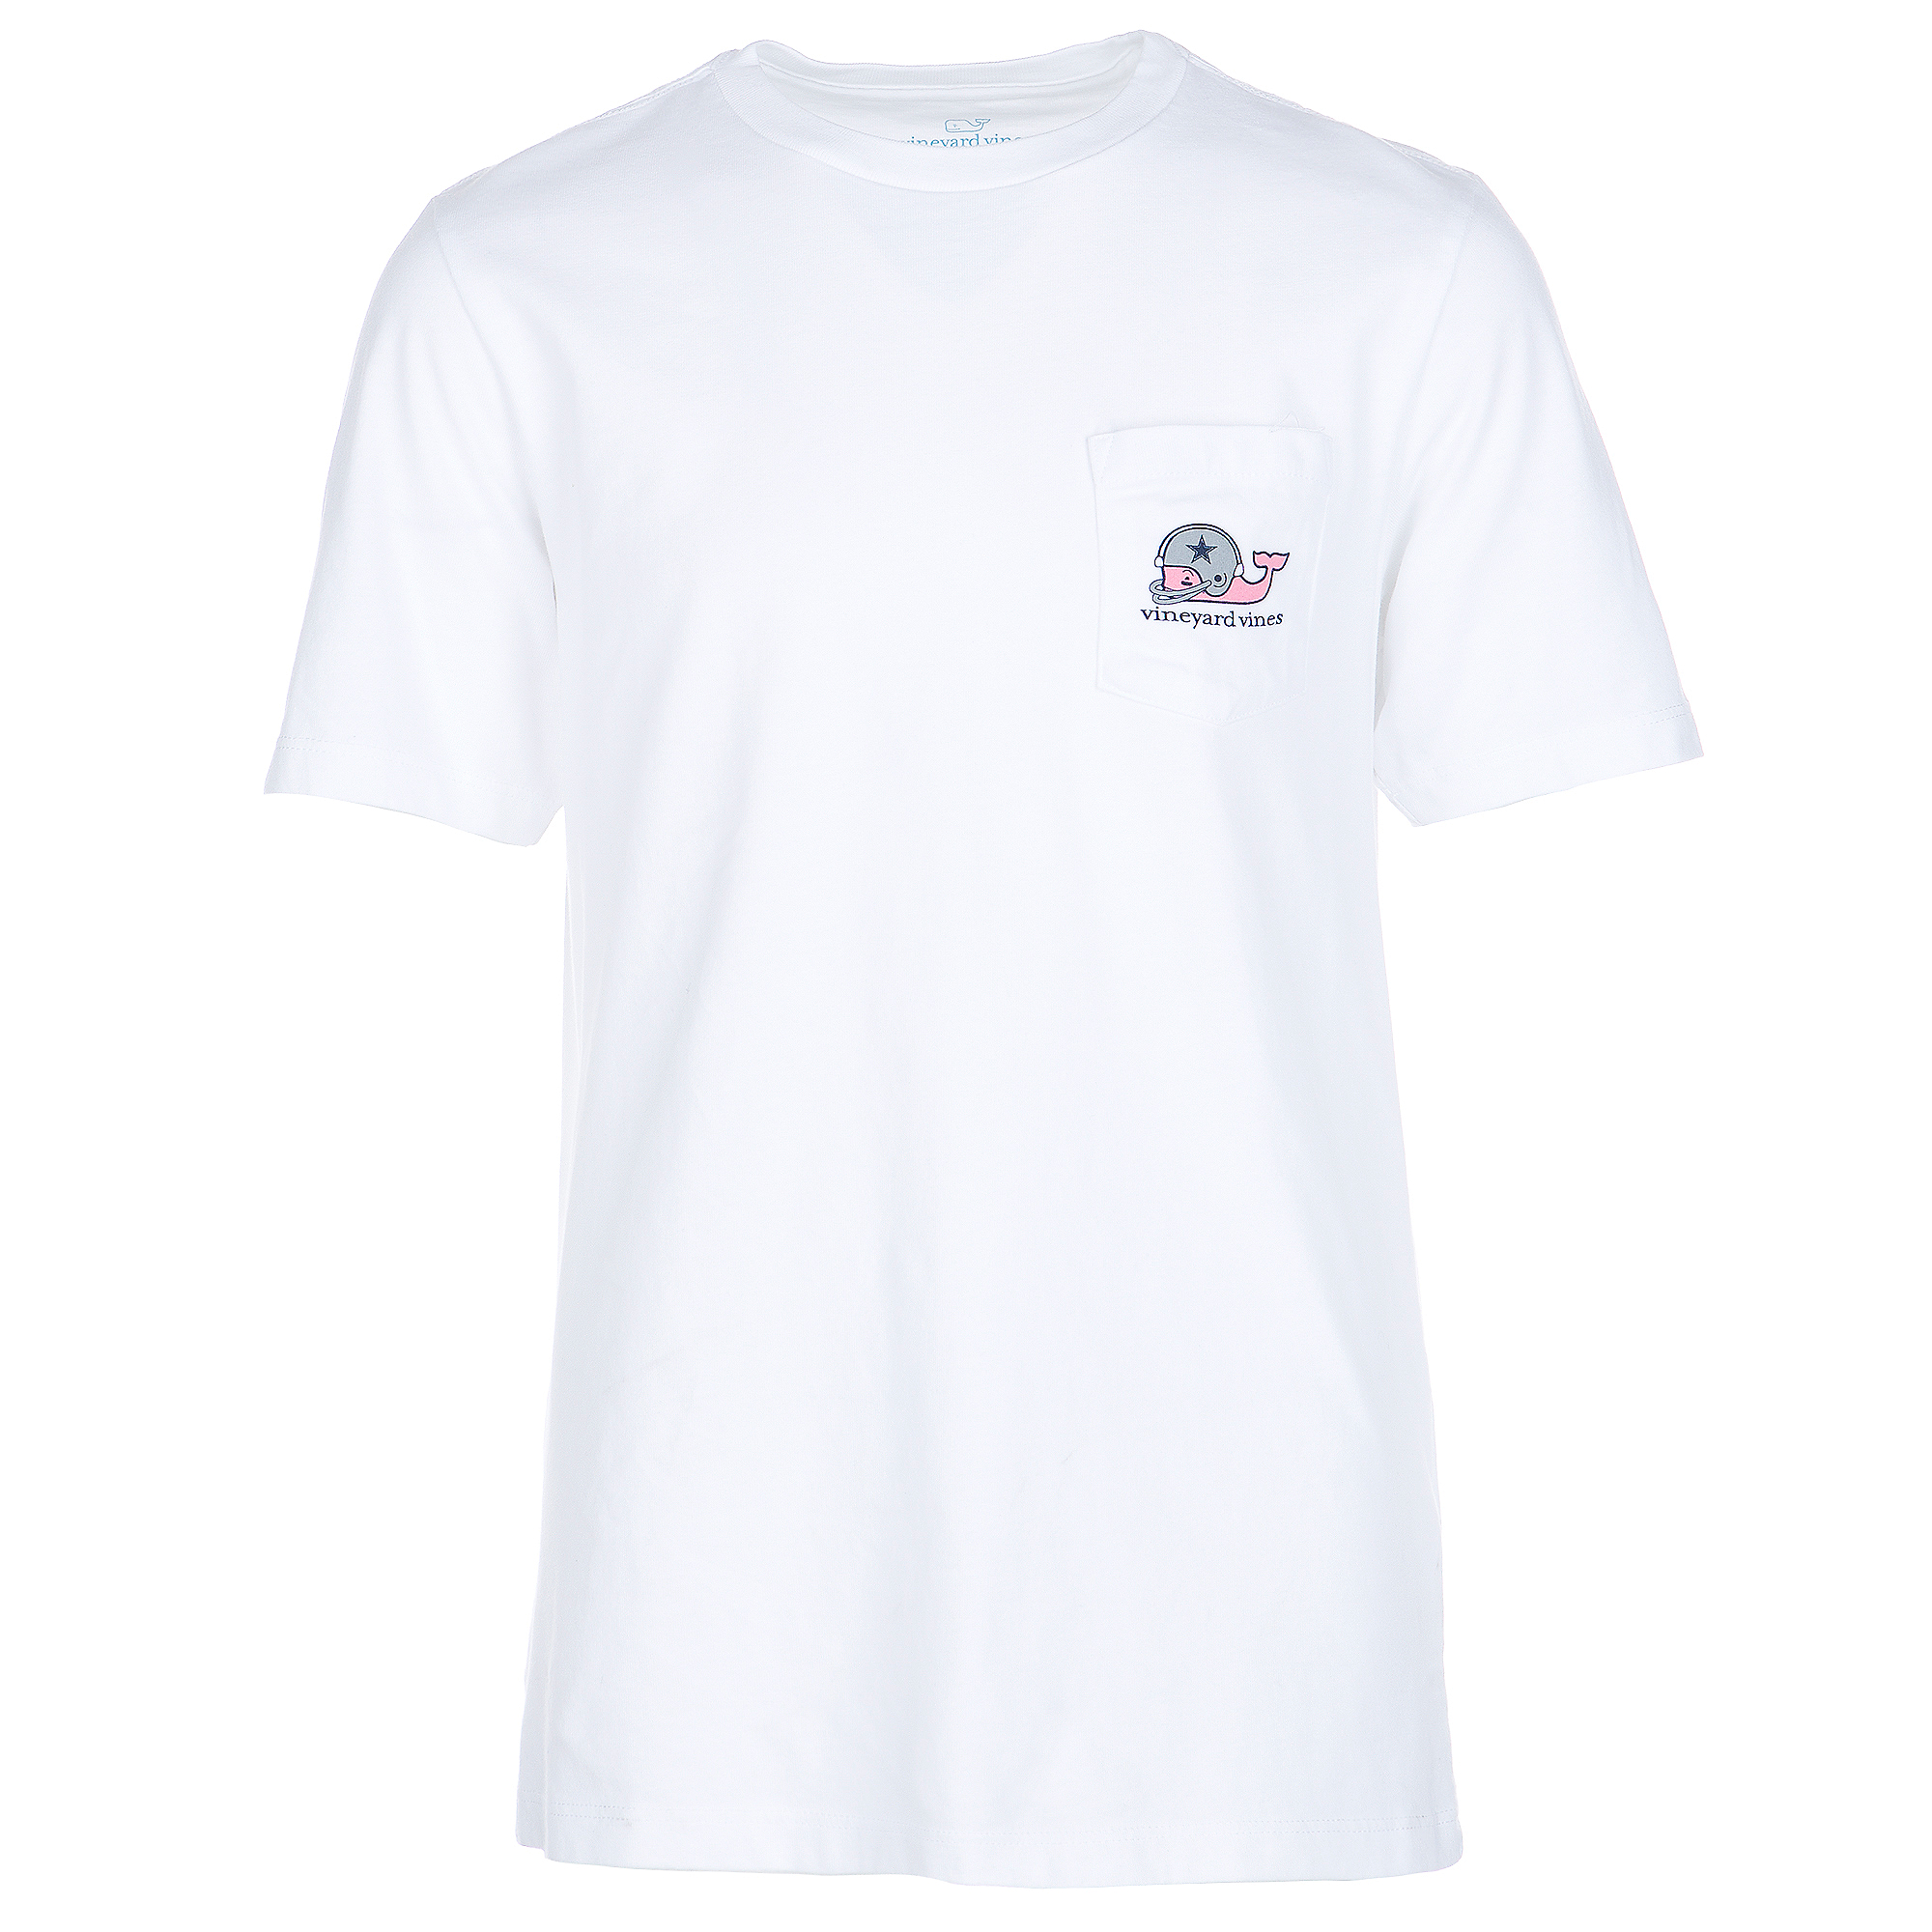 Dallas Cowboys Vineyard Vines Youth Whale Football Short Sleeve Tee